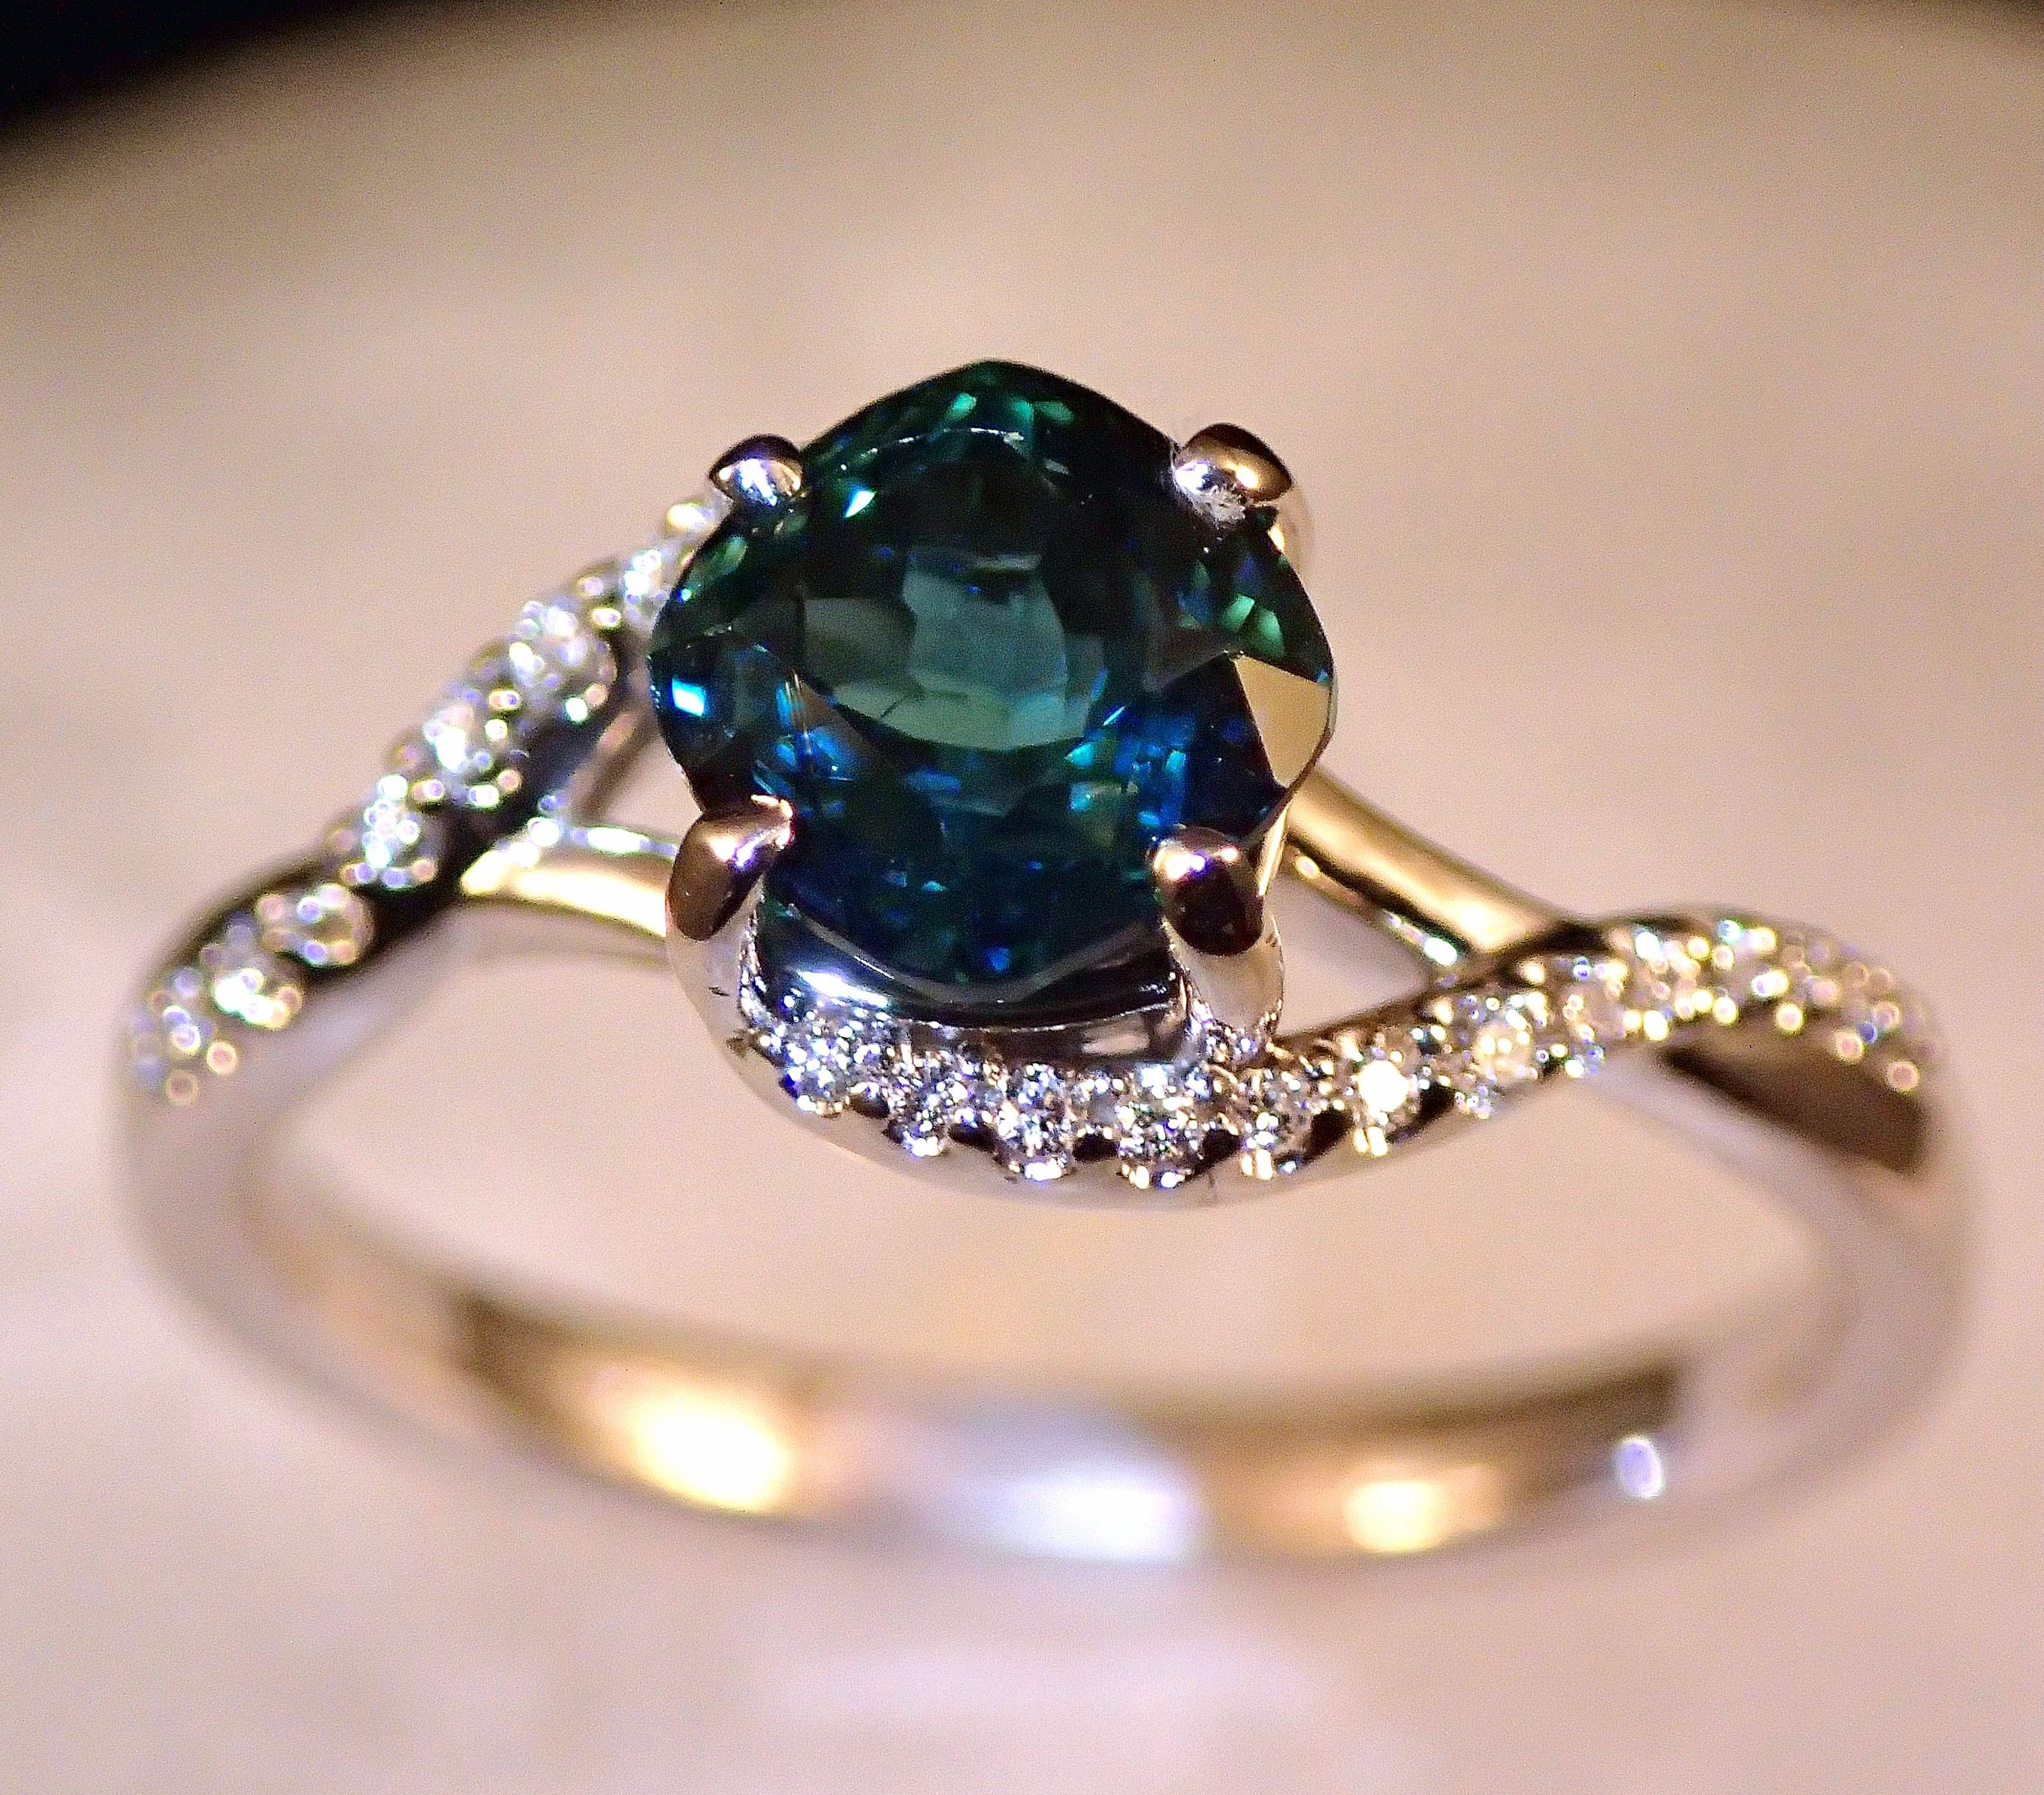 il green diamond rose rings sapphire oval teal ring eidelprecious campari engagement peacock listing fullxfull gold by